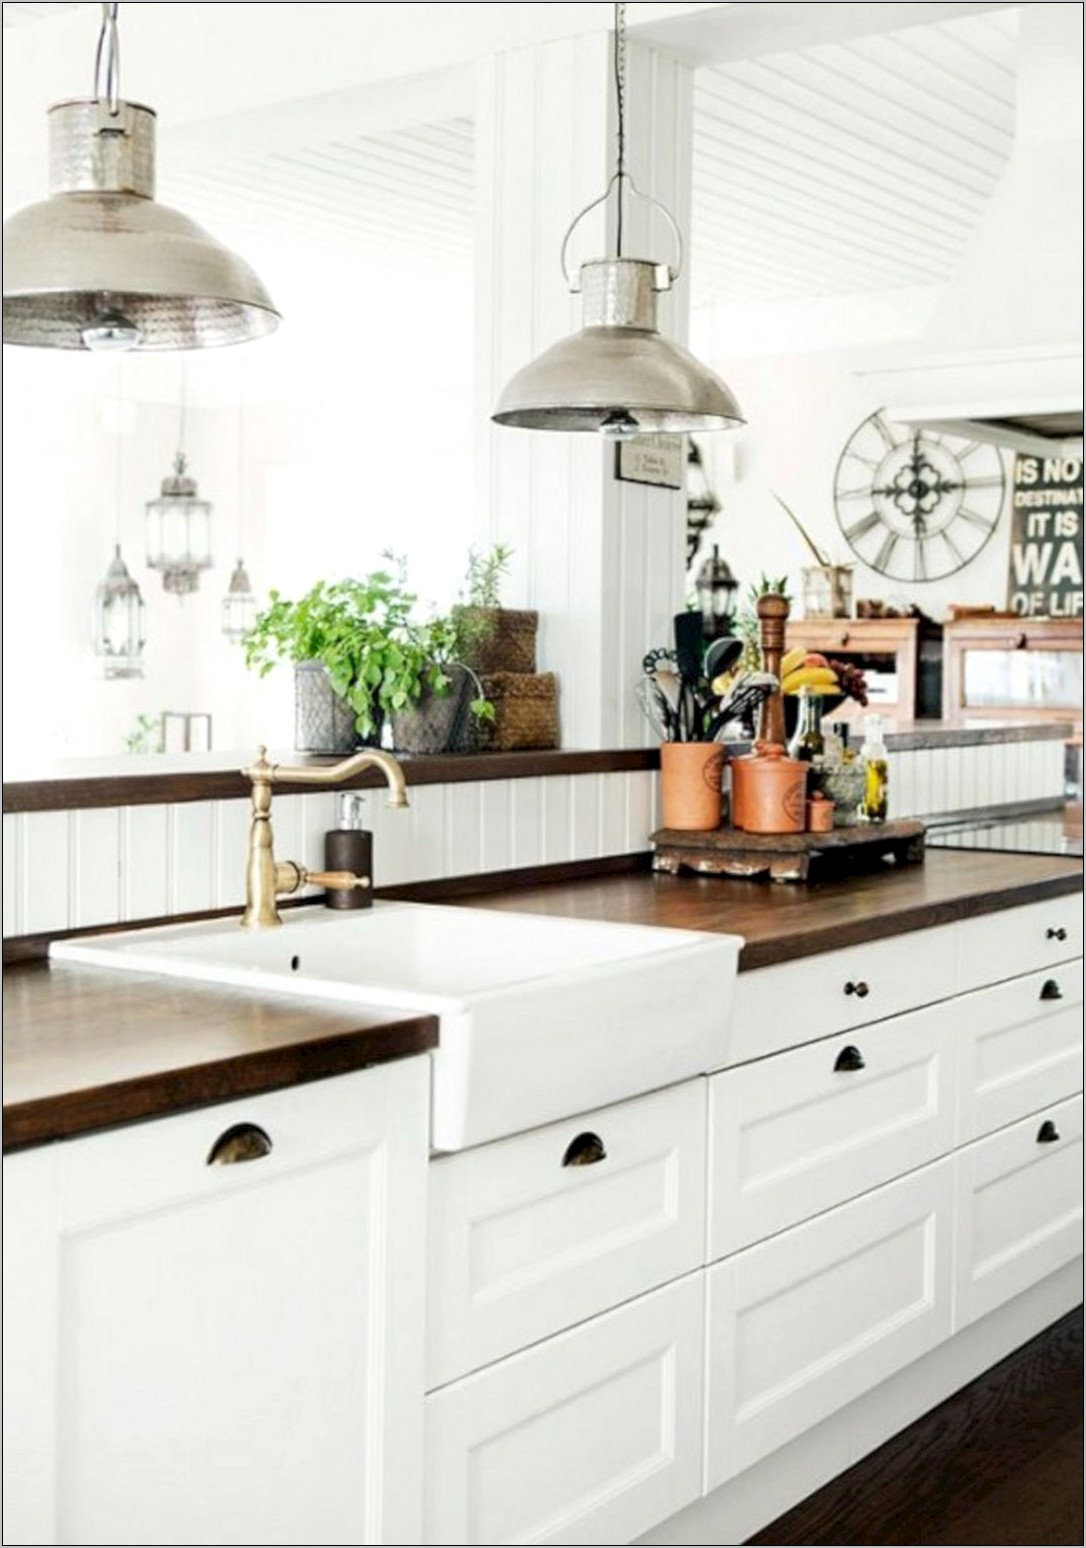 Farmhouse Kitchen Counter Decor Ideas